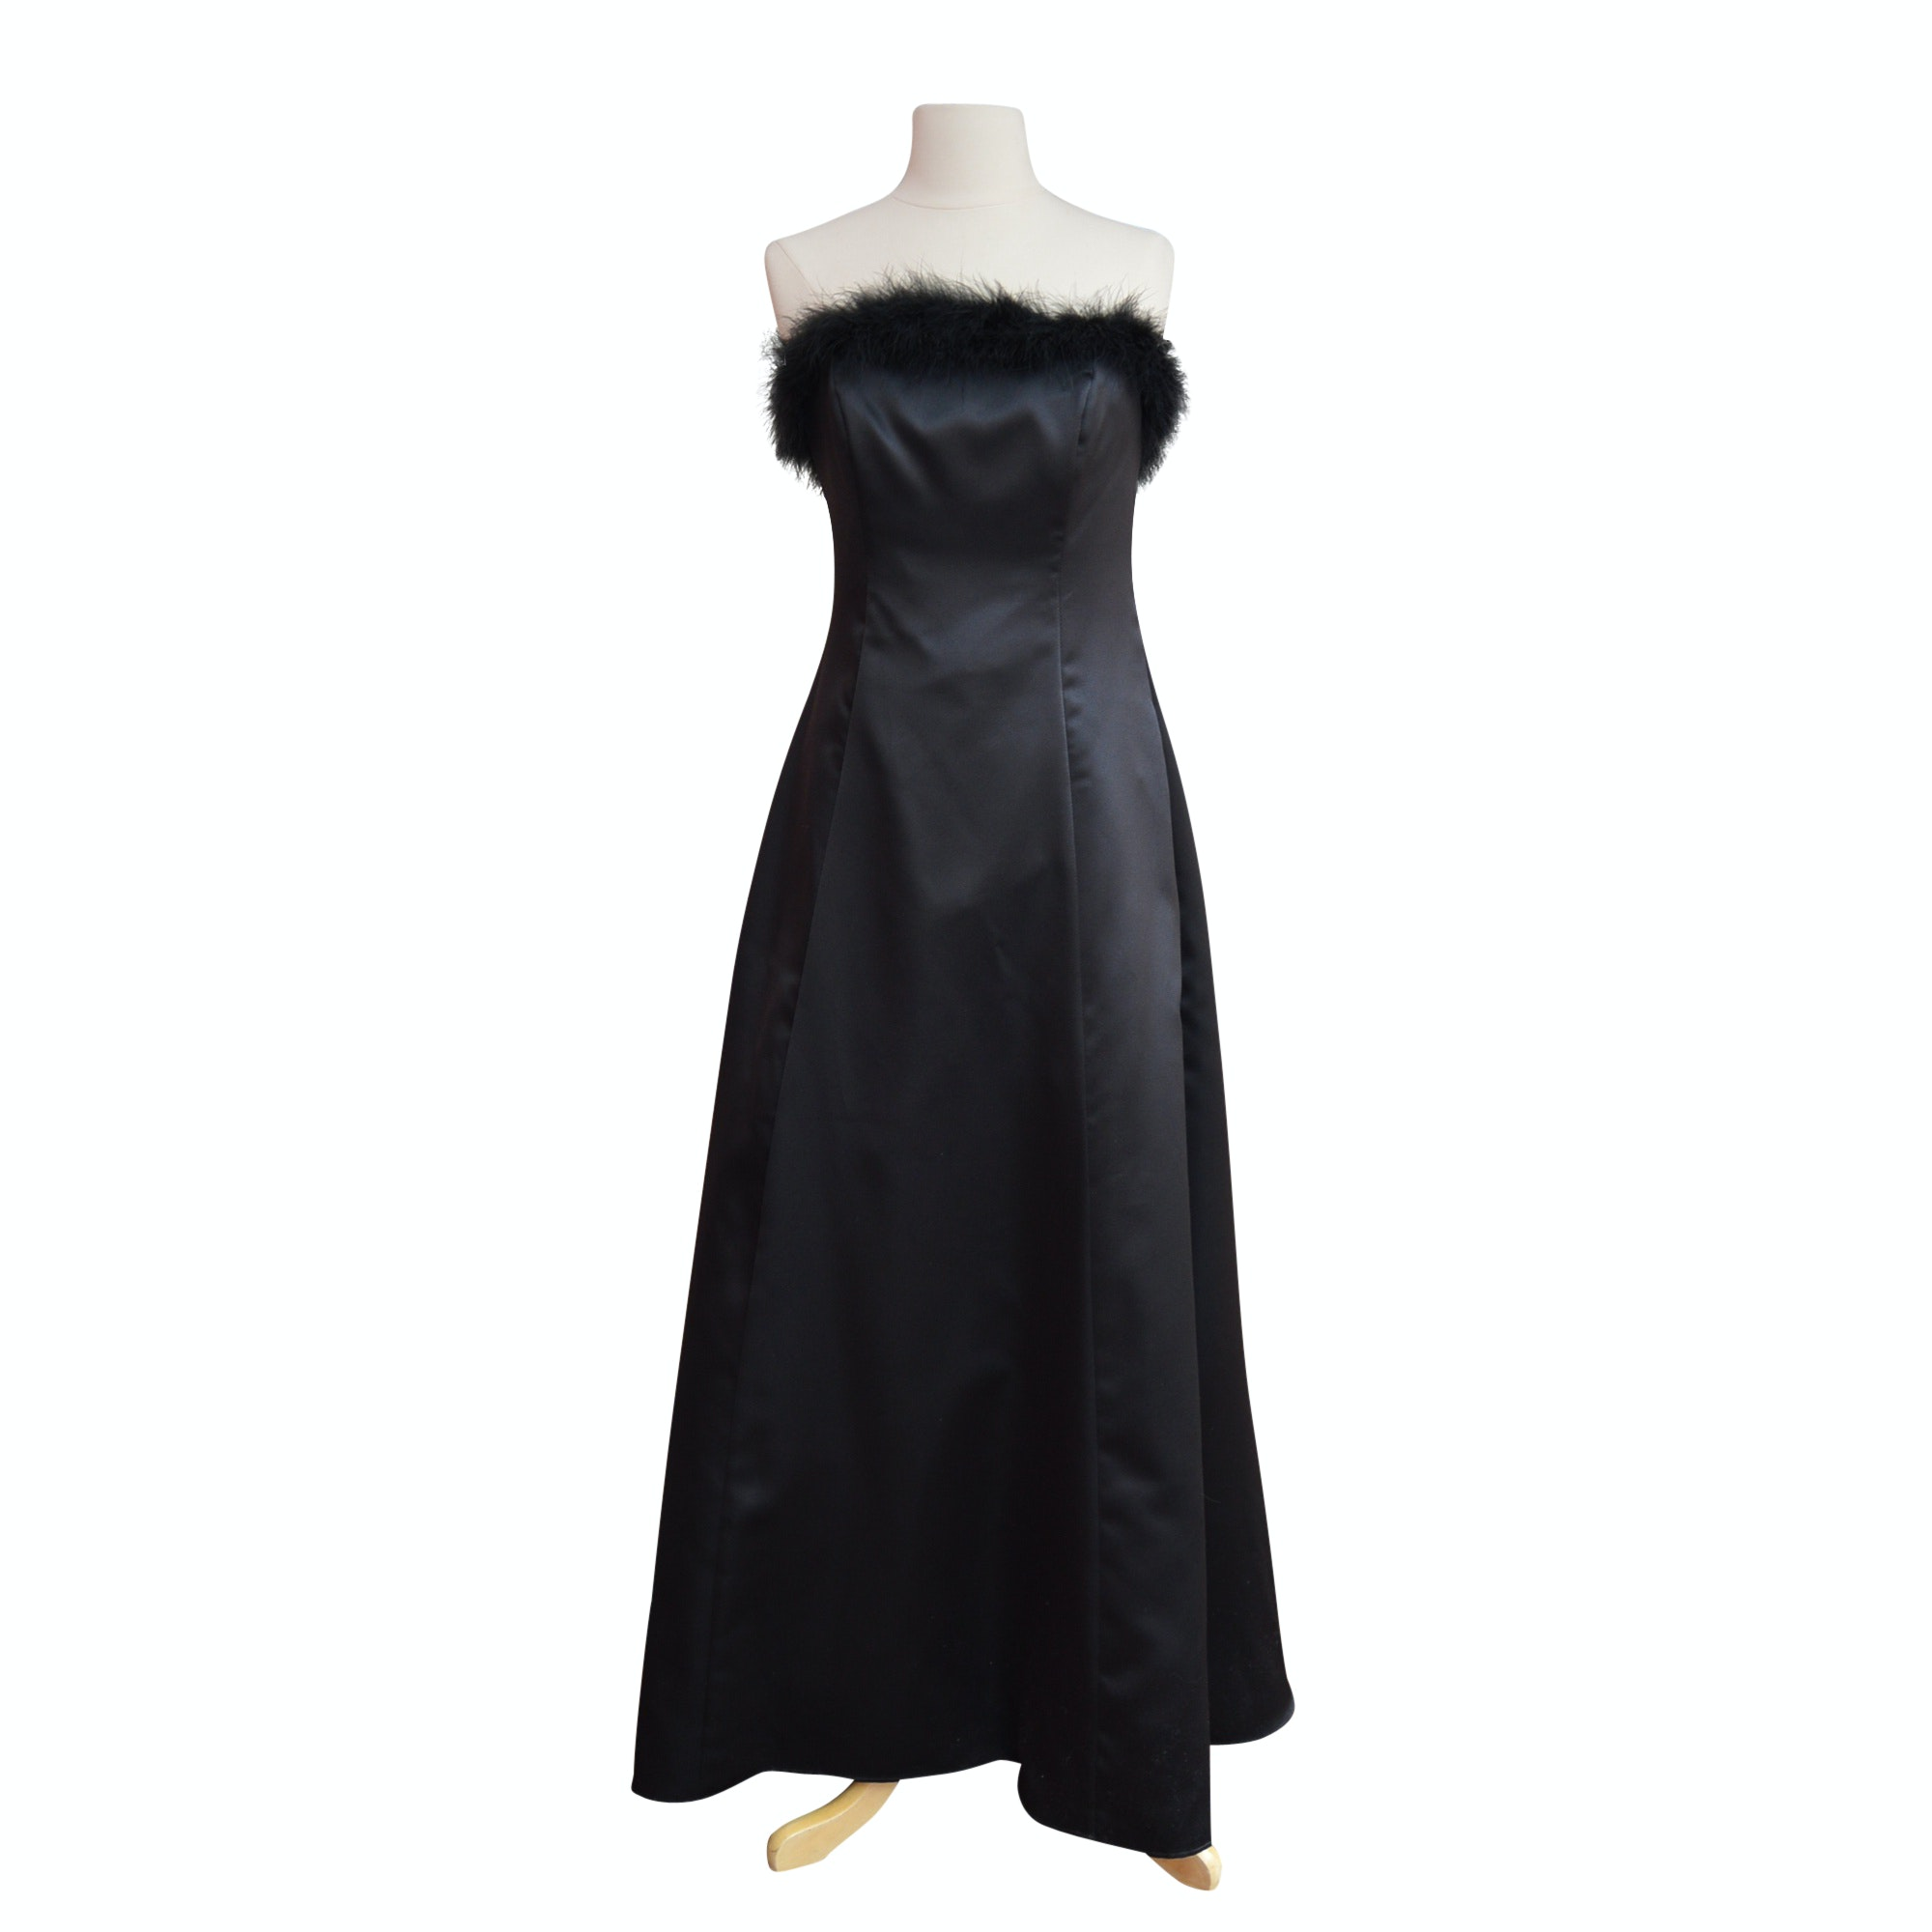 Vintage Black Satin Strapless Evening Gown with Marabou Feathers